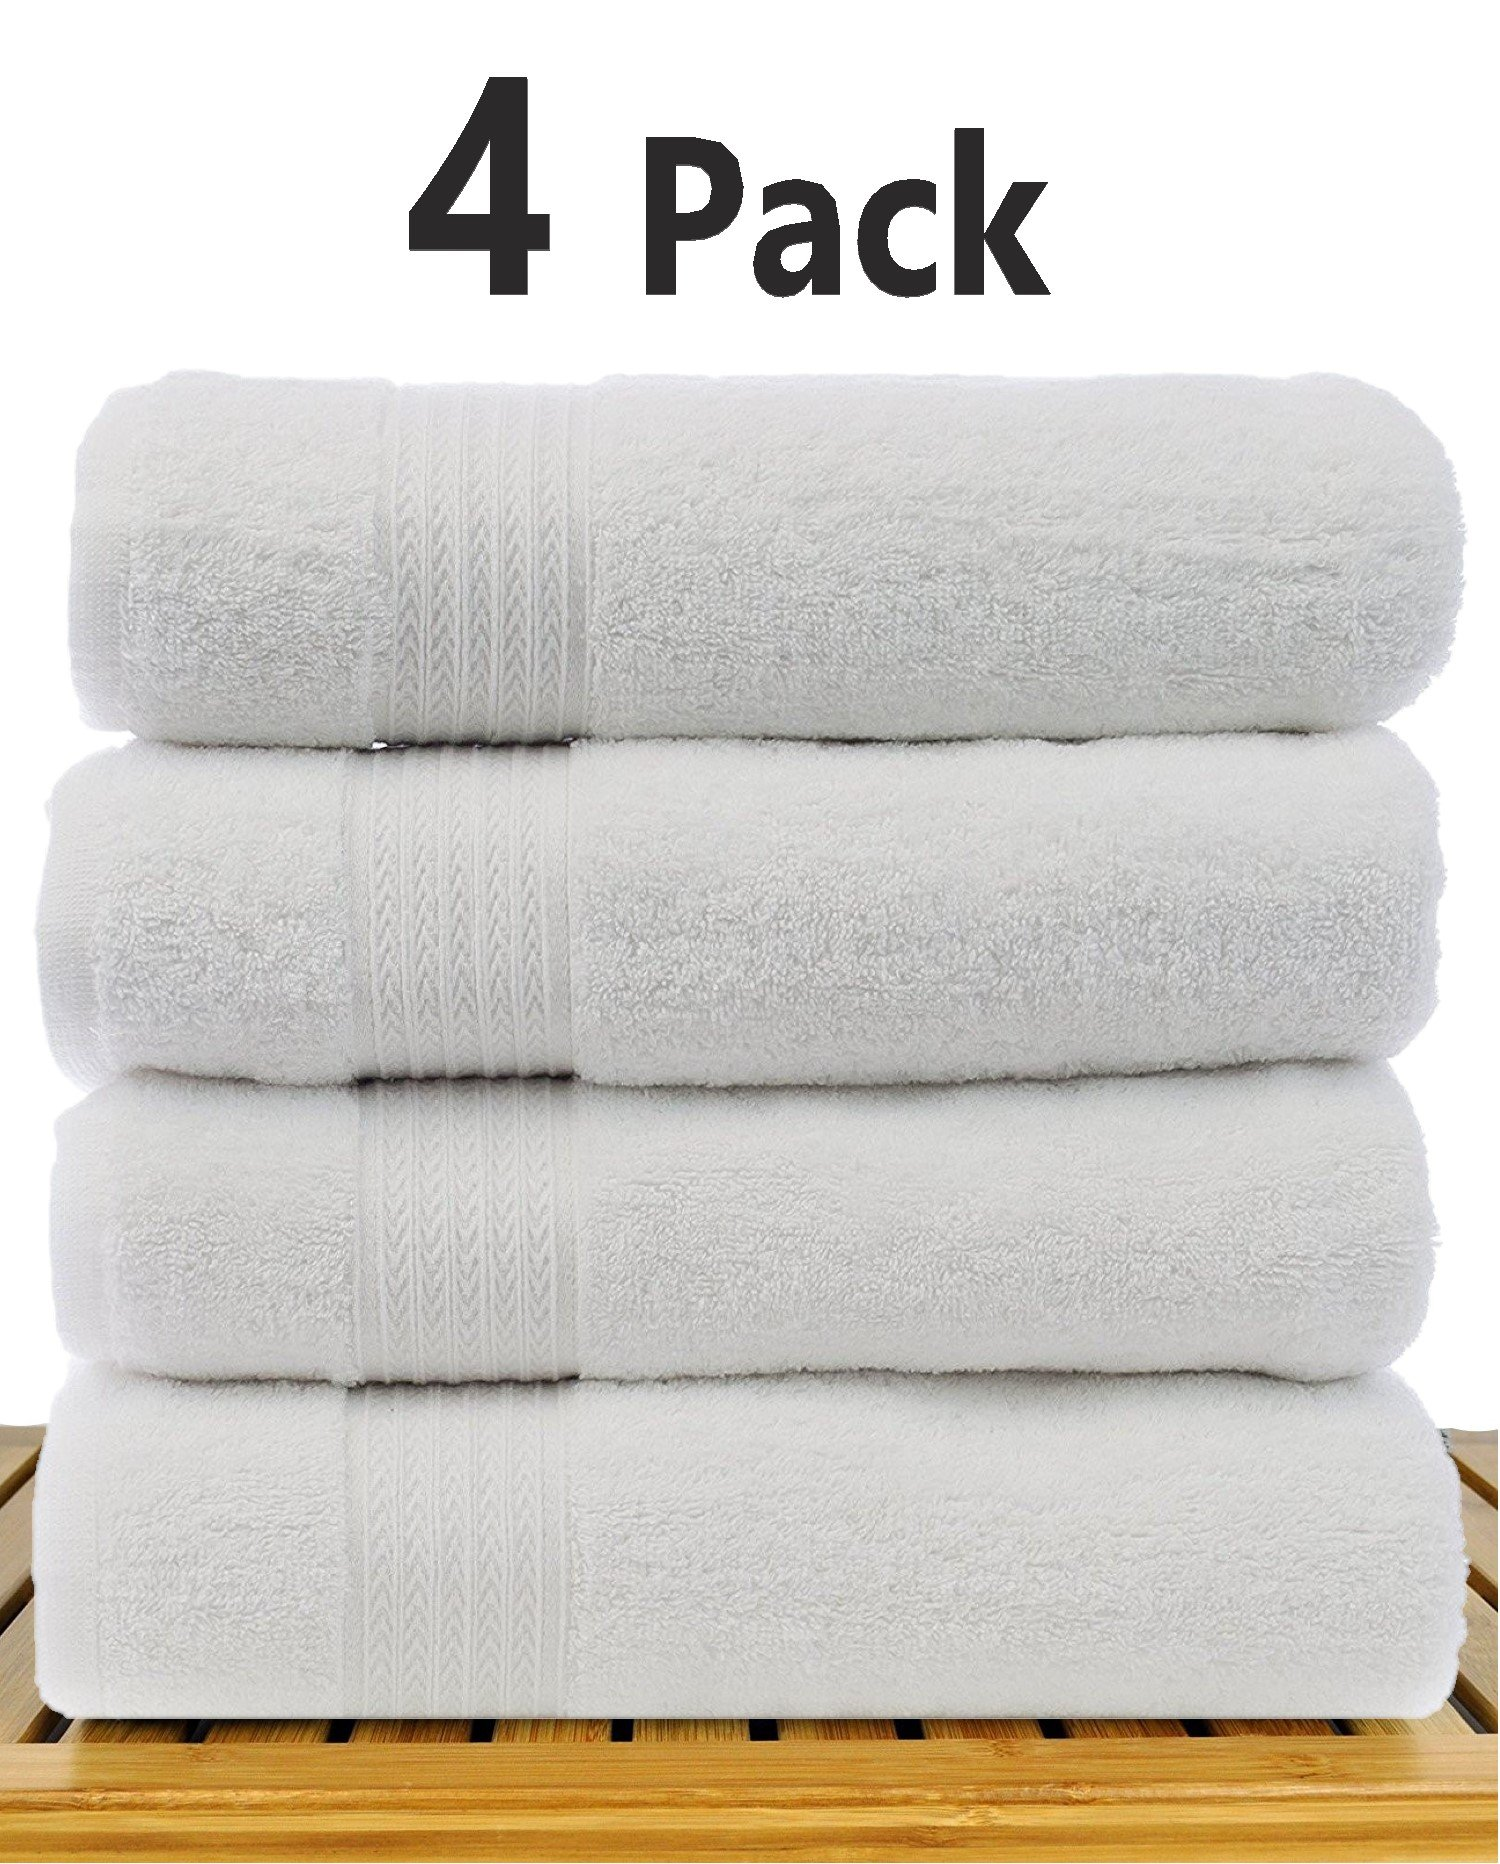 TowelPro Luxury Premium Soft 100% Cotton 700 GSM Highly Absorbent Machine Washable Multi-Purpose Hotel, Spa, Home, Bath Towels Set of 4 Extra Large 27'' X 55'' (White)